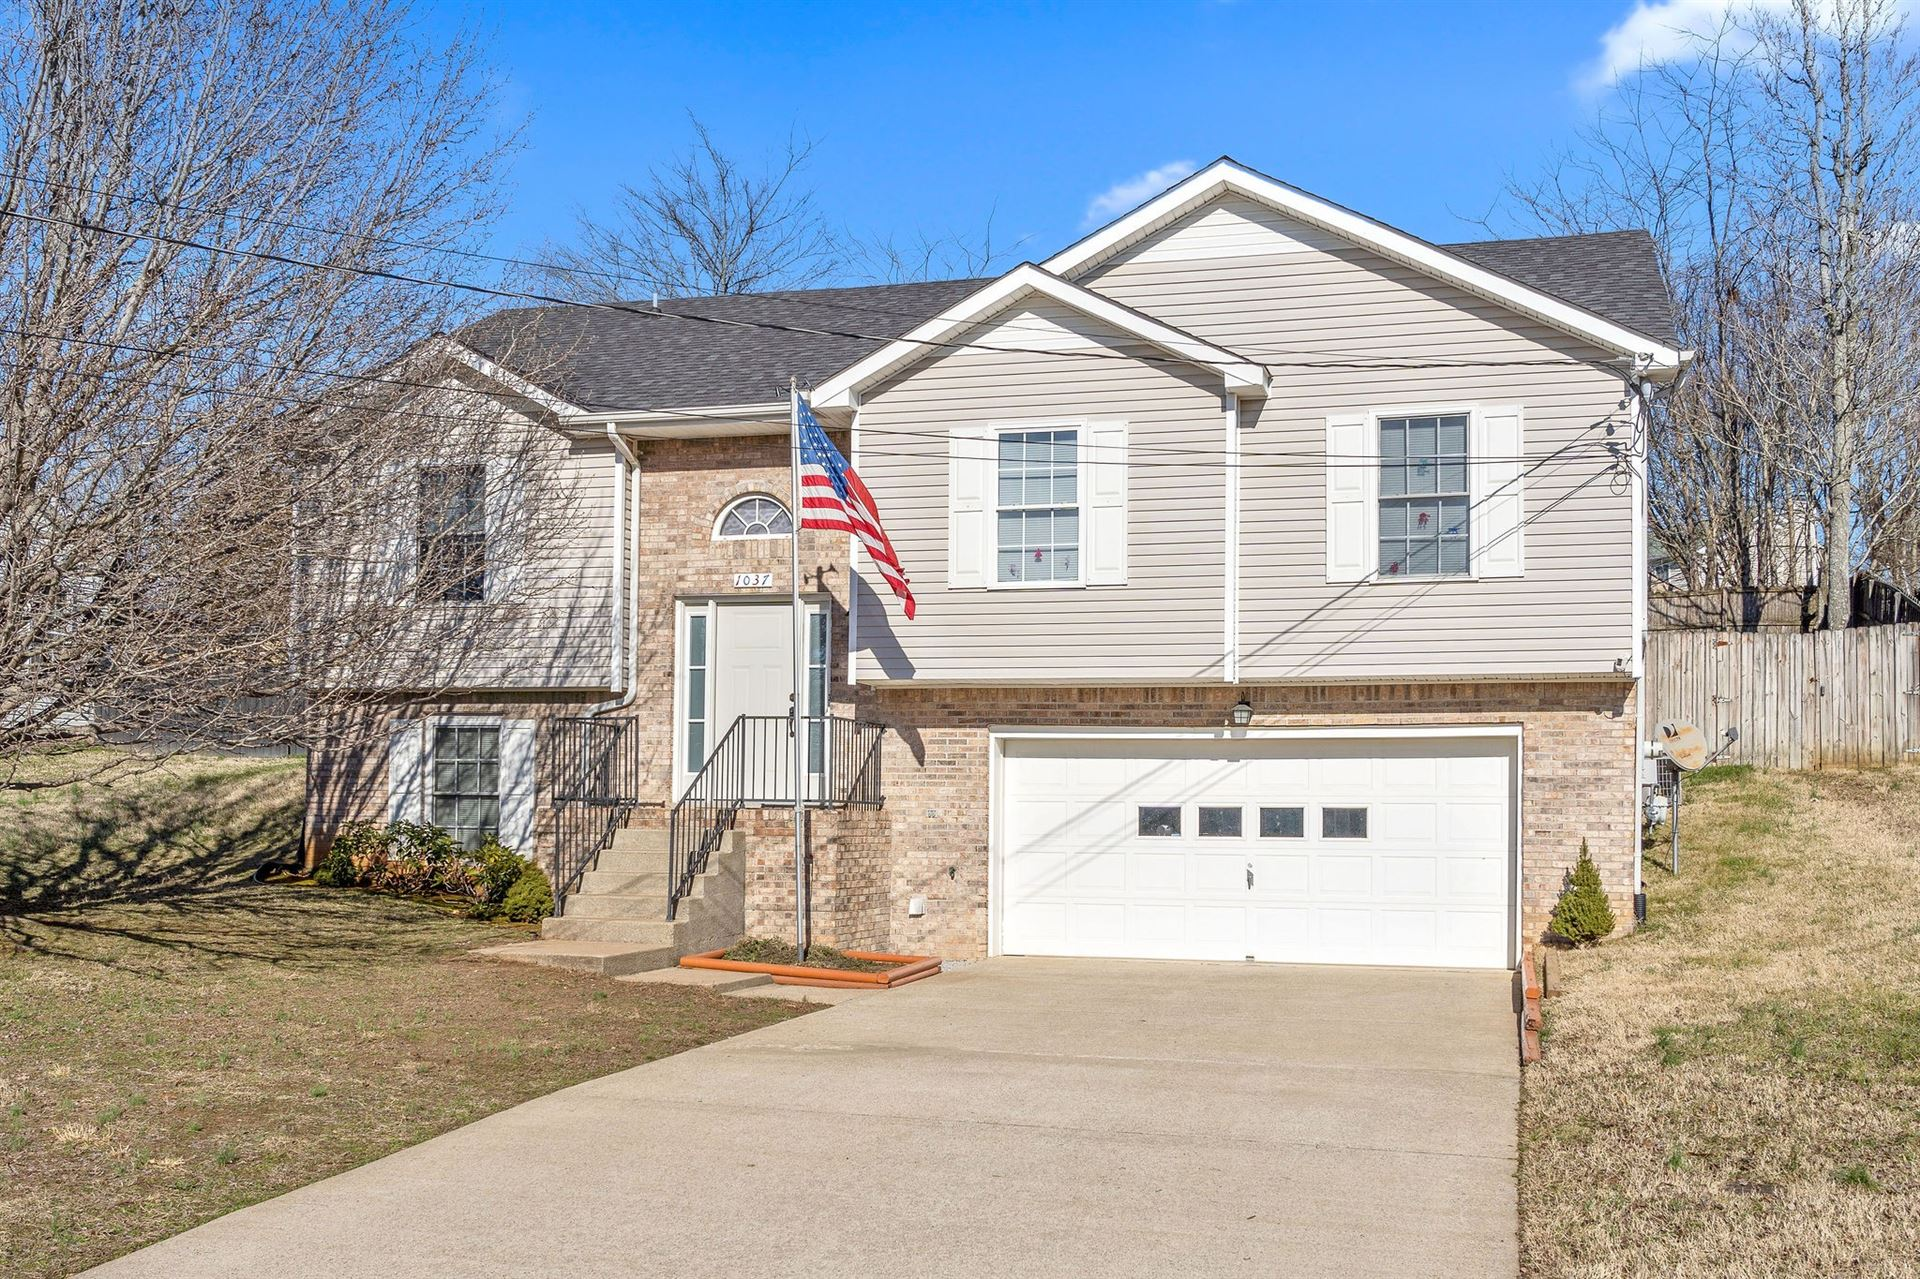 1037 Persimmon Ct, Clarksville, TN 37040 - MLS#: 2233371